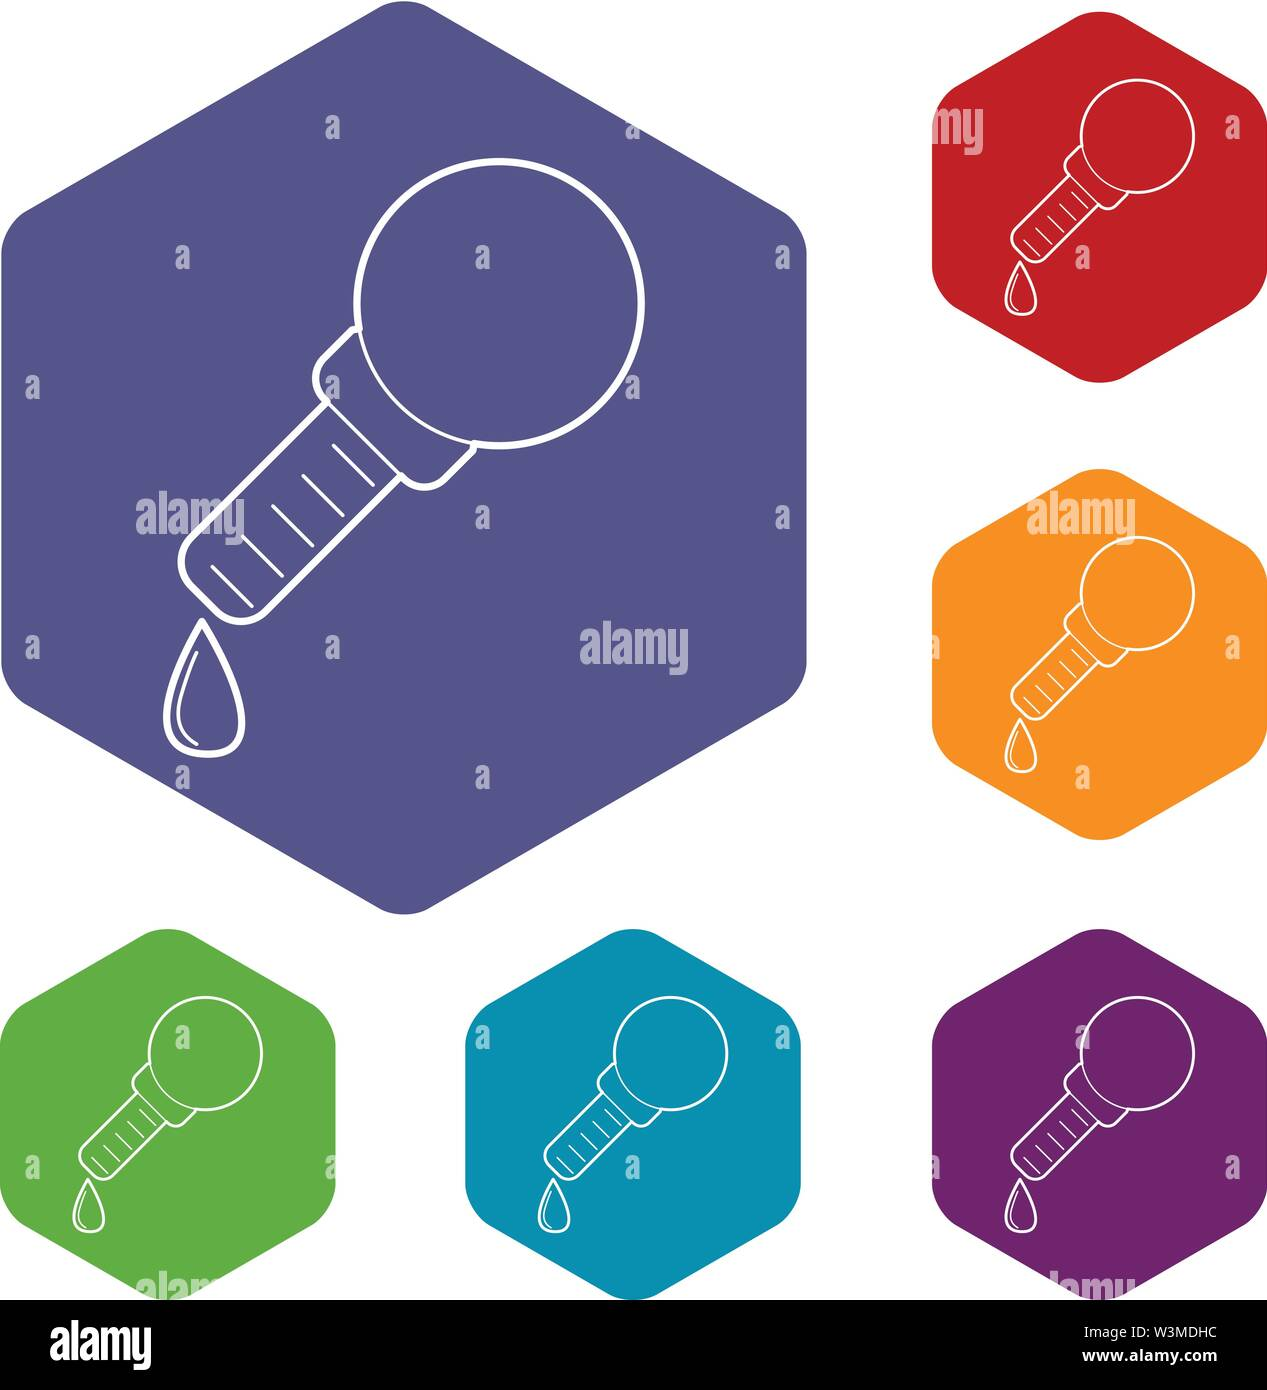 Pipette icons vector hexahedron - Stock Image